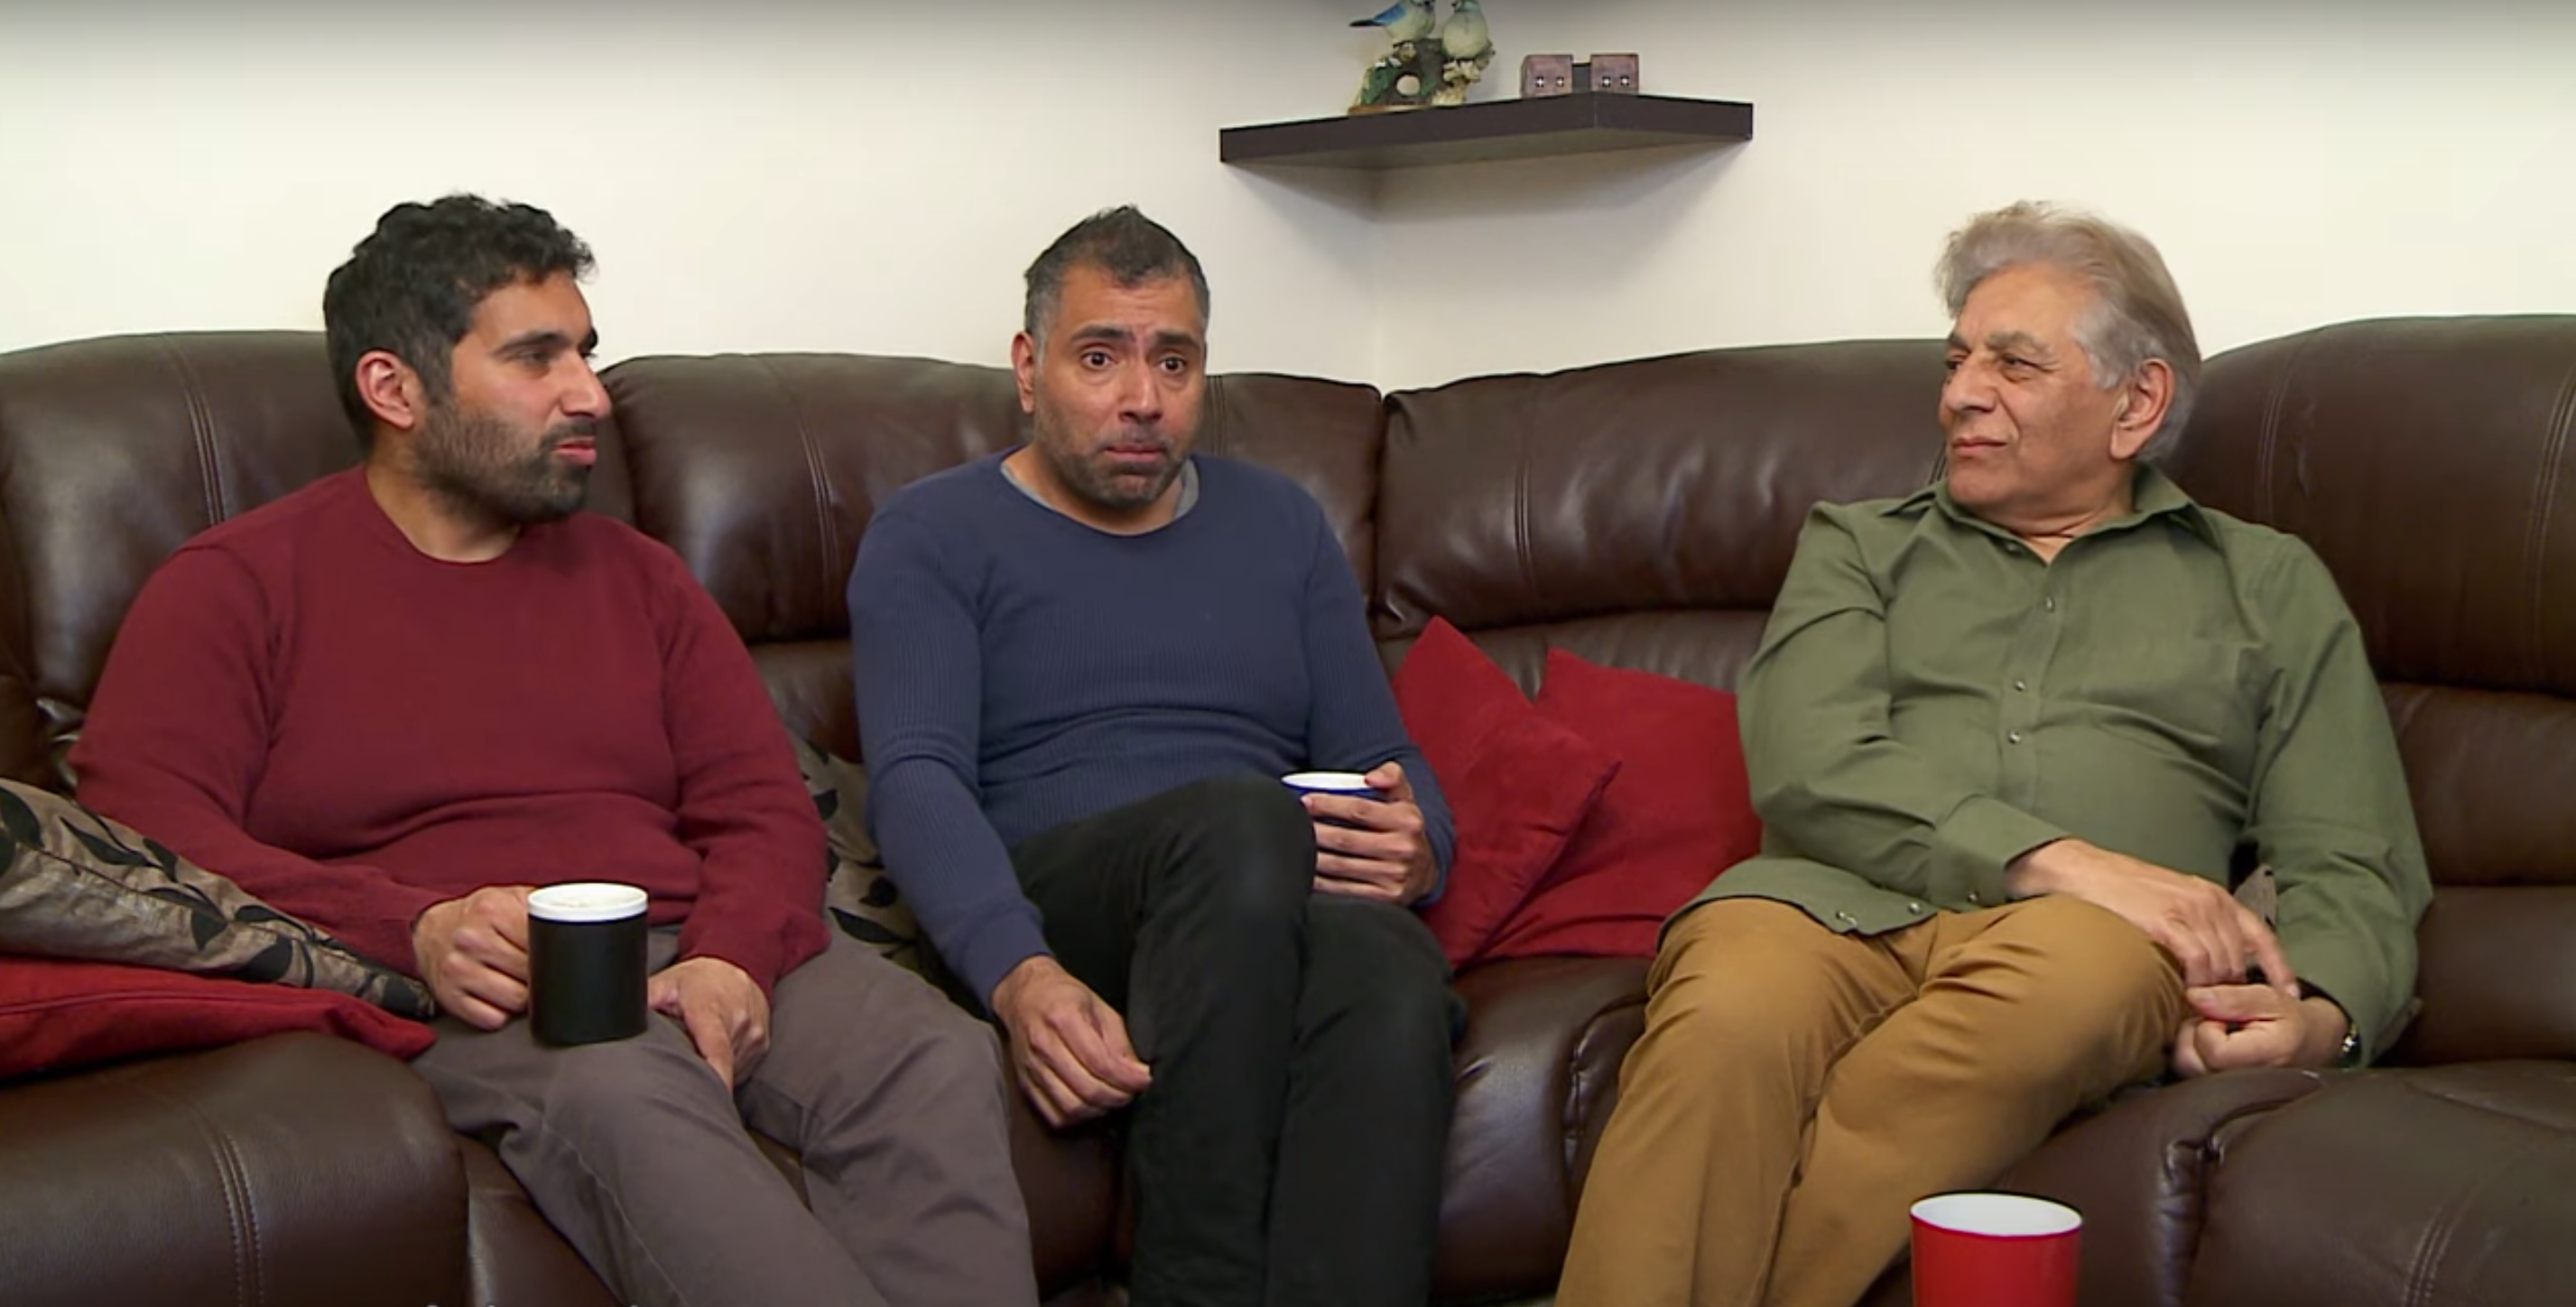 Gogglebox star Sid Siddiqui sends message to fans after show absence concerns